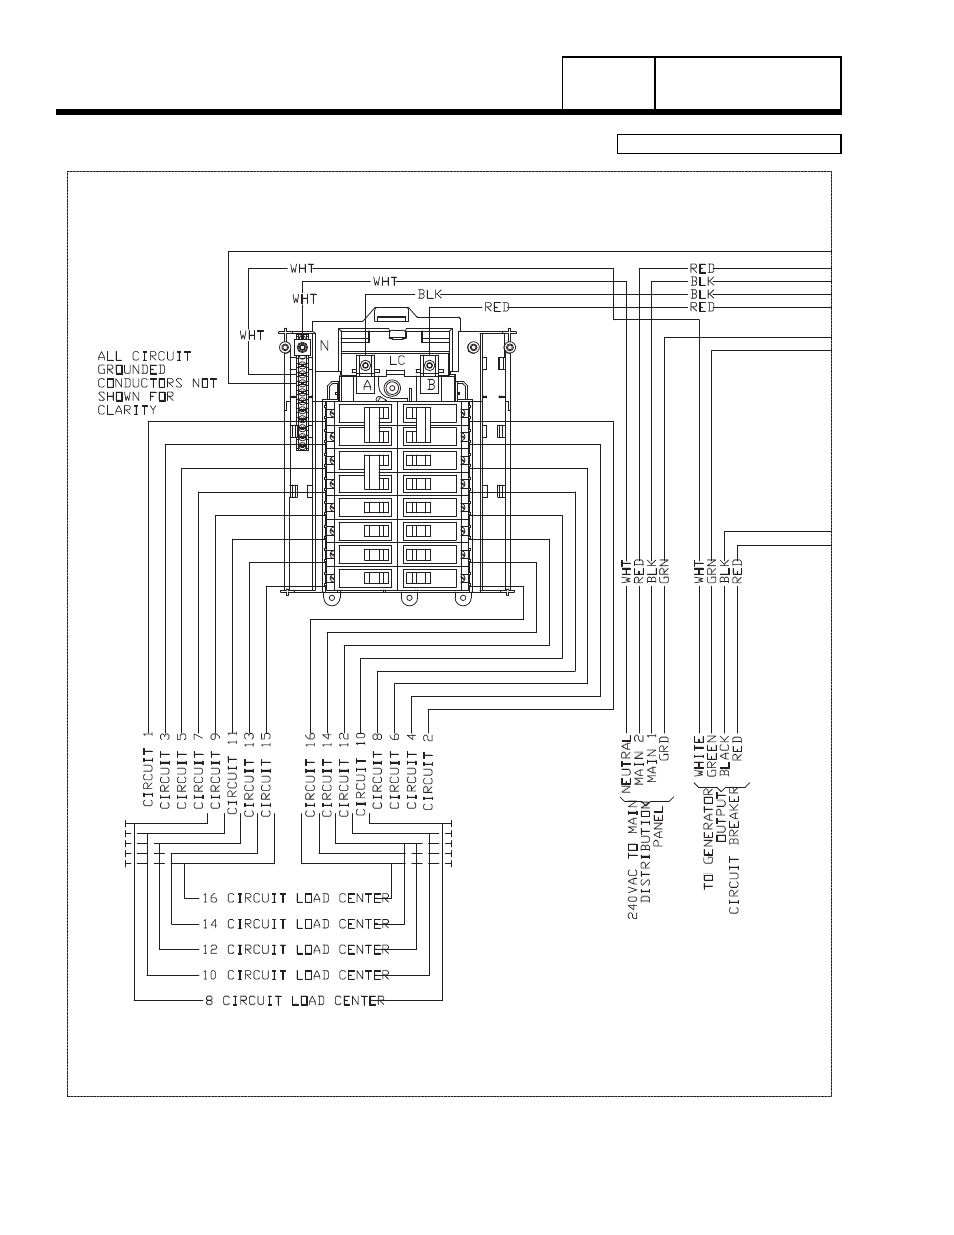 8 Kw Generac Wiring Diagram Internal Diagrams 20kw Schematic Group G Part 7 Home Standby Power Transfer Switch